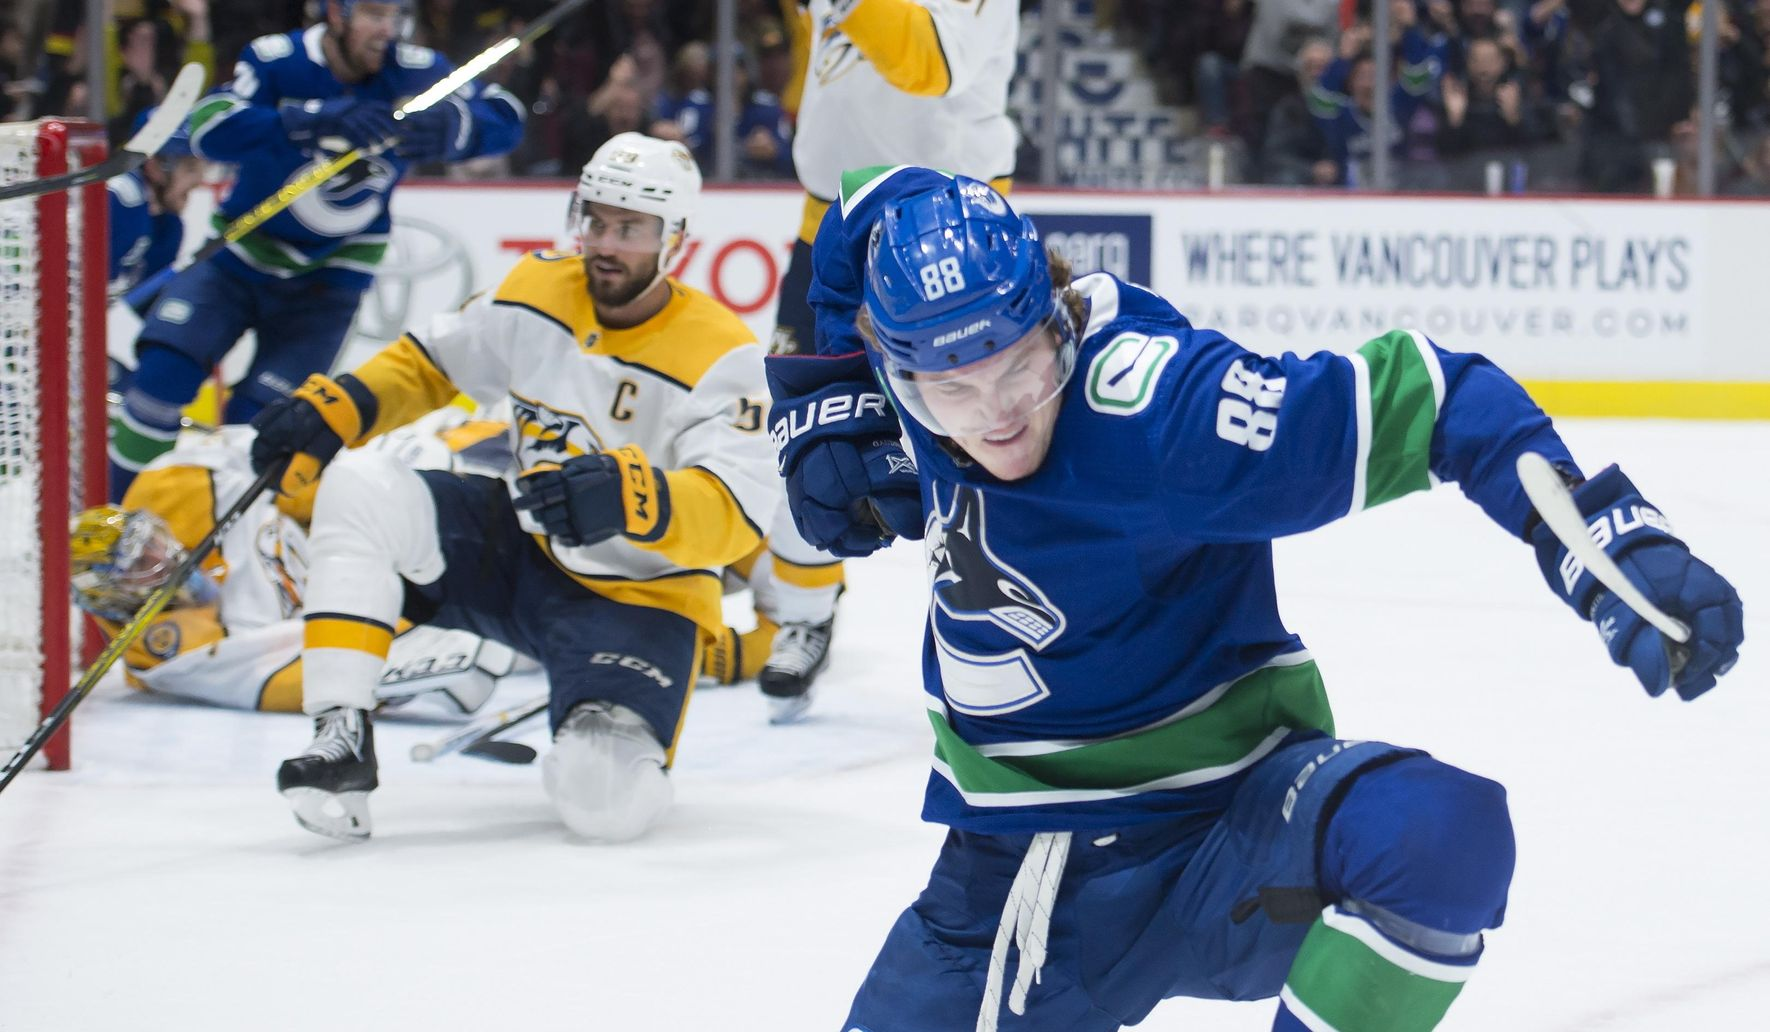 Aptopix_predators_canucks_hockey_08352_c0-125-3239-2013_s1770x1032